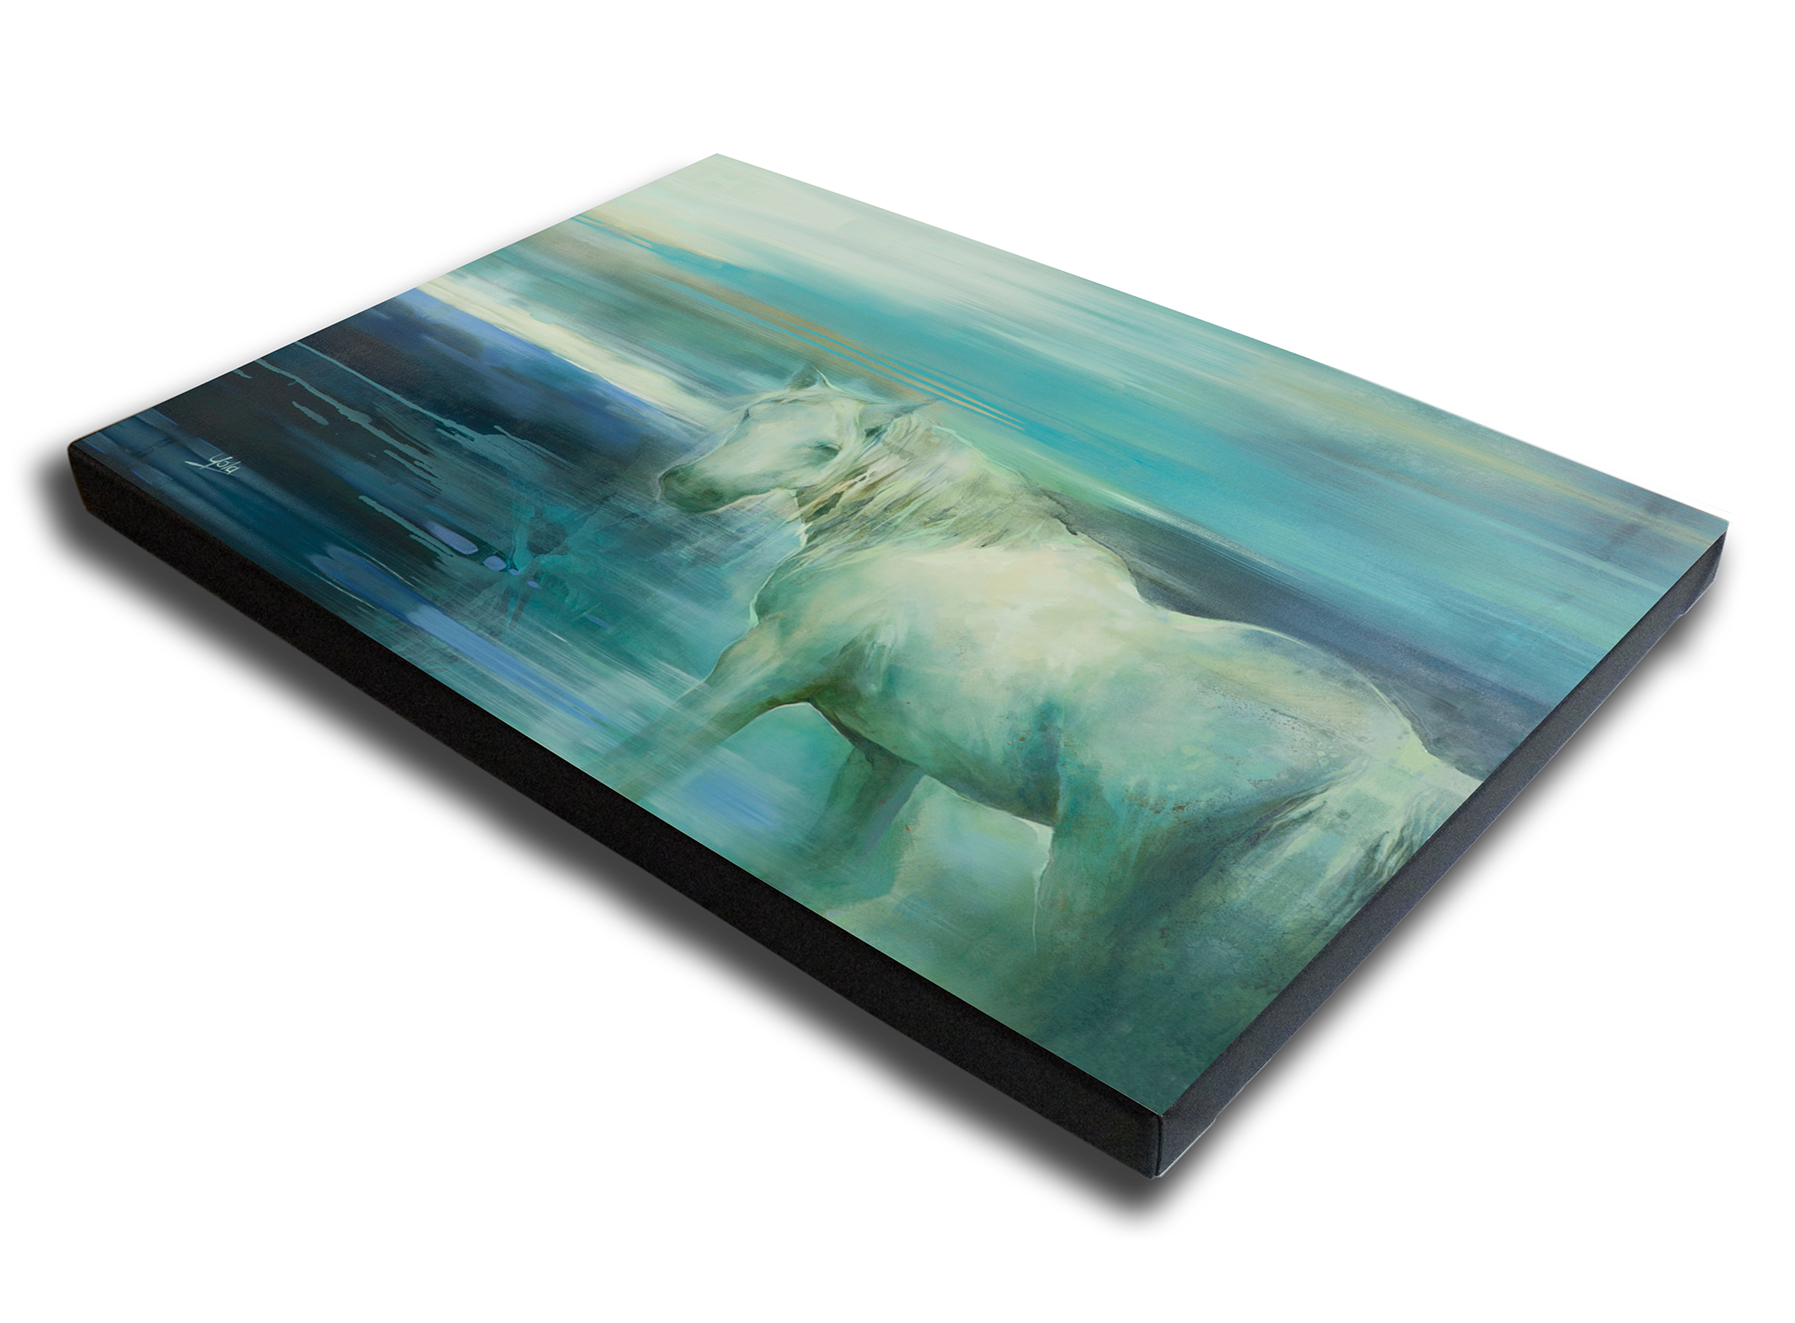 The Studio Art Gallery - Spirit Guide by Yola Quinn - Canvas Print on Stretcher